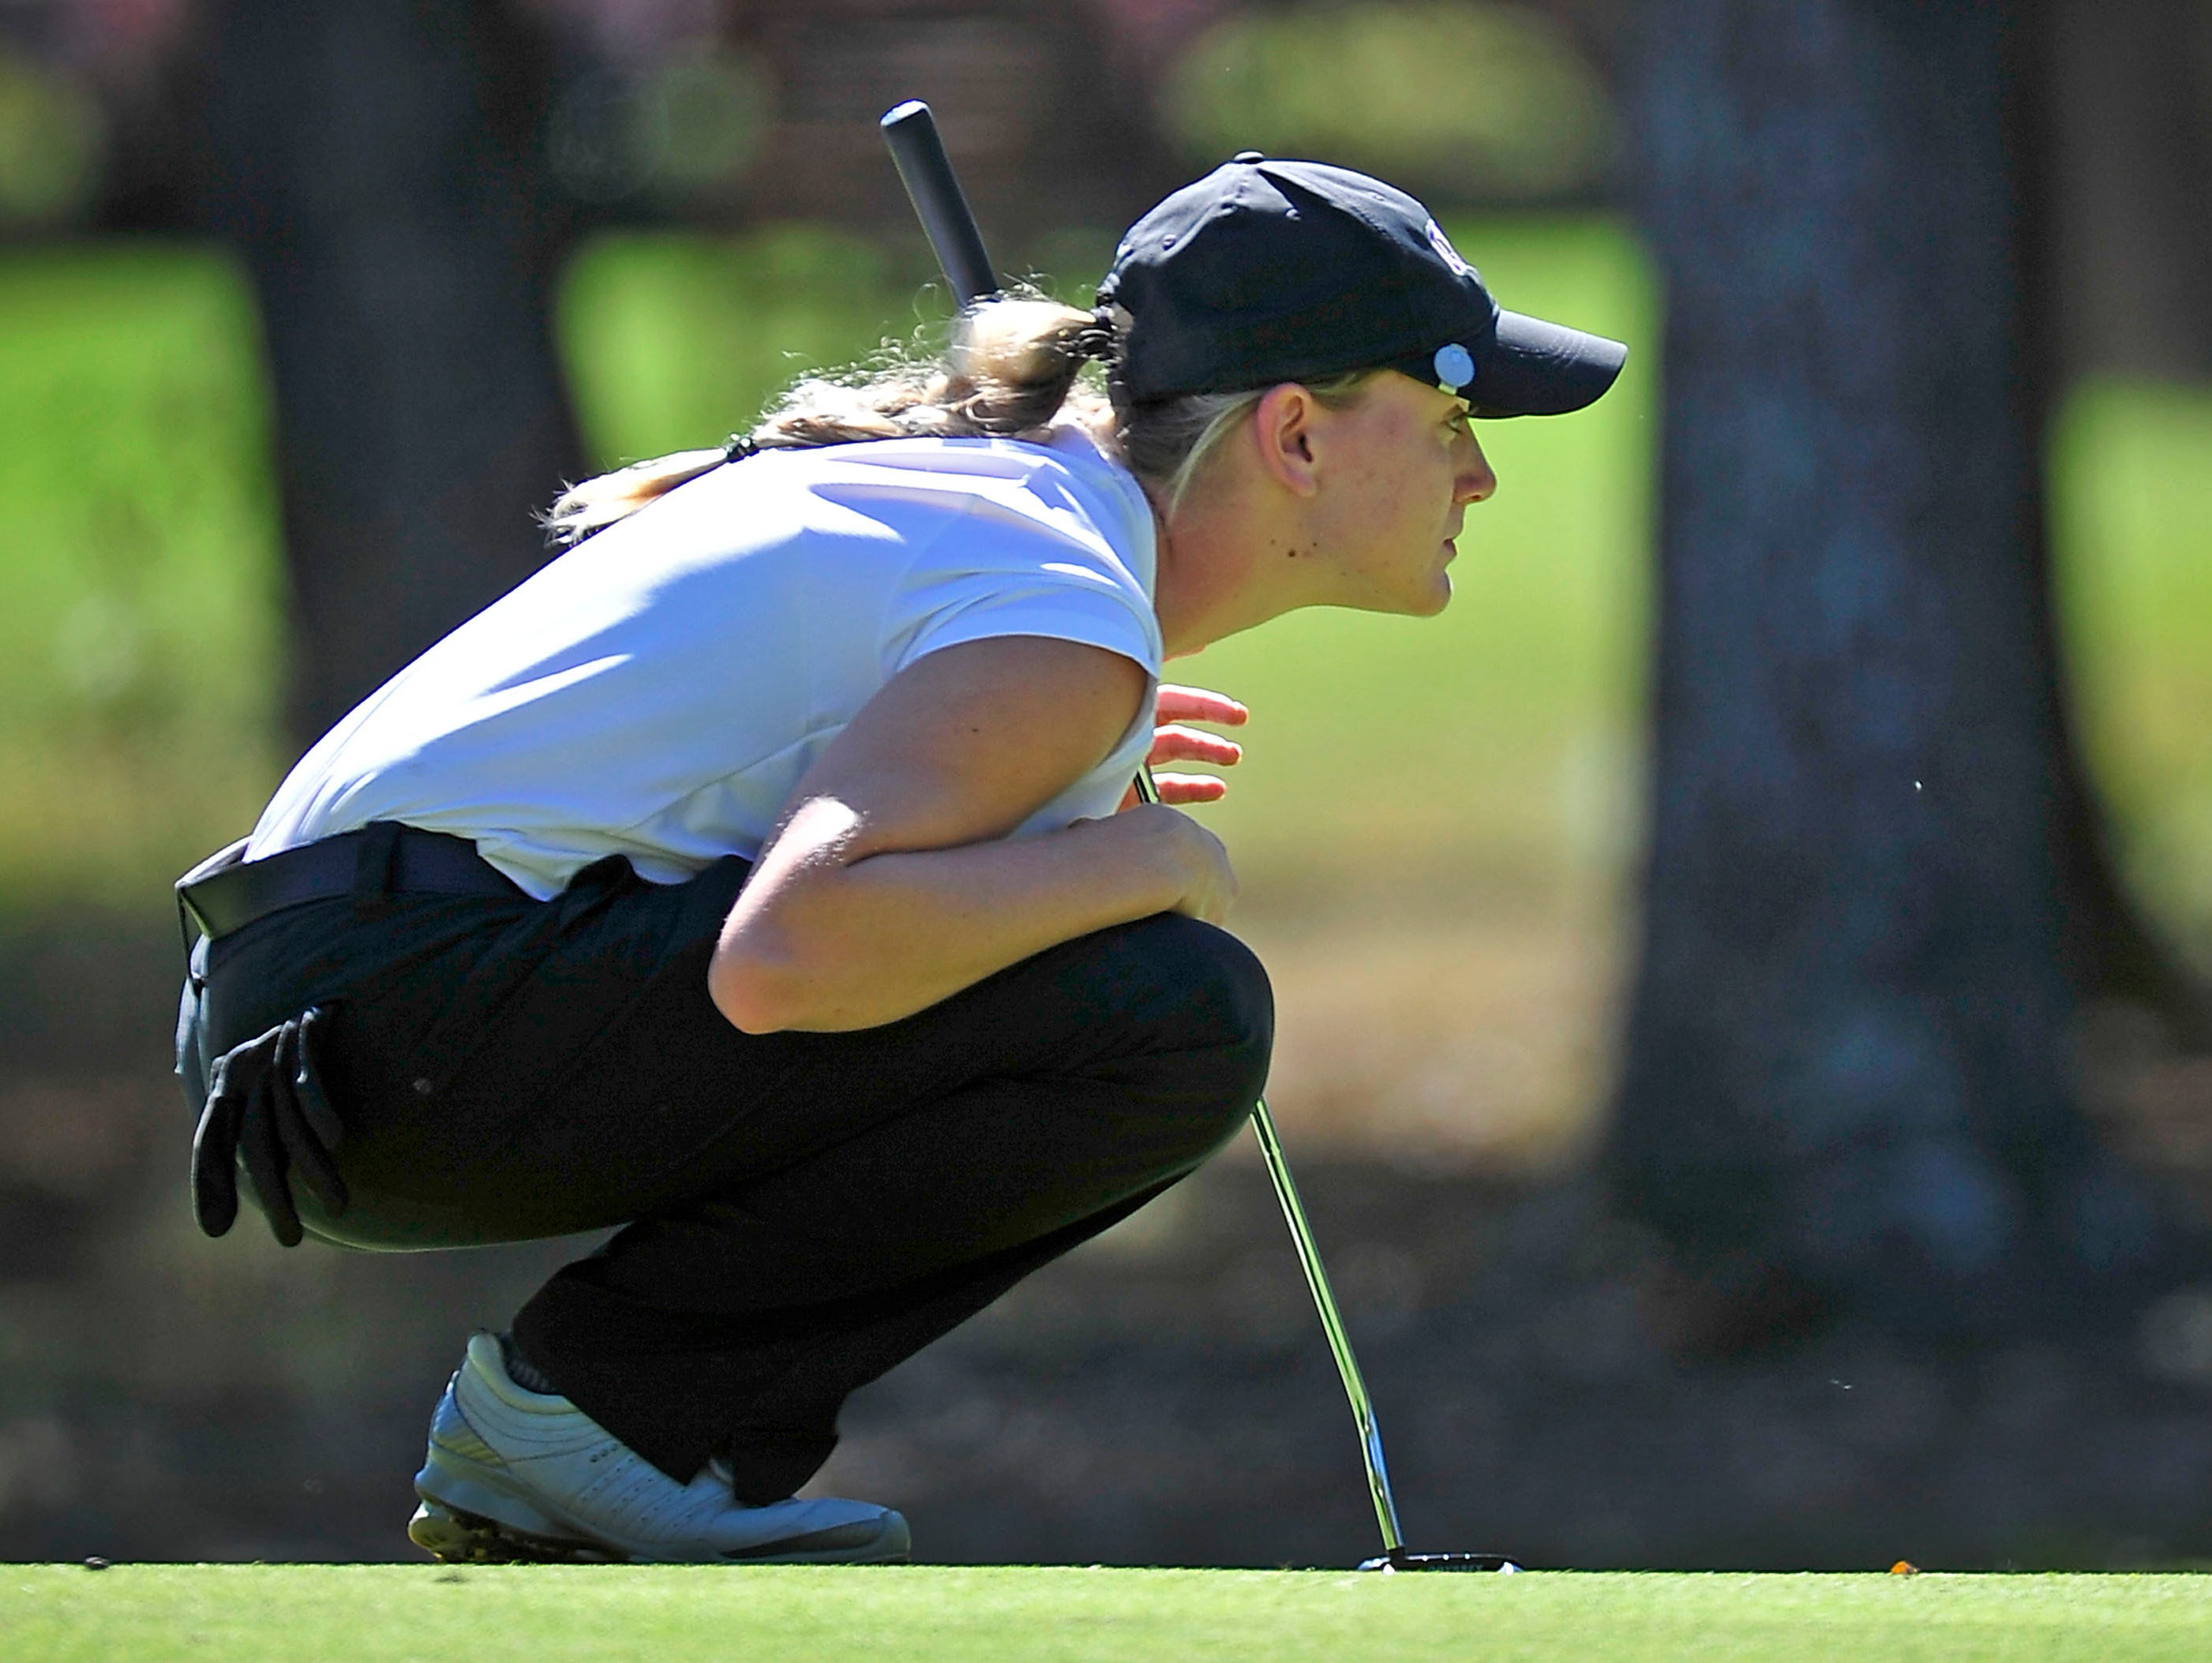 CPA's Siarra Stout looks at a putting line on the 11th green during the Class A/AA State Golf Tournament at WillowBrook Golf Club in Manchester, Tenn., Wednesday, Oct. 14, 2015.